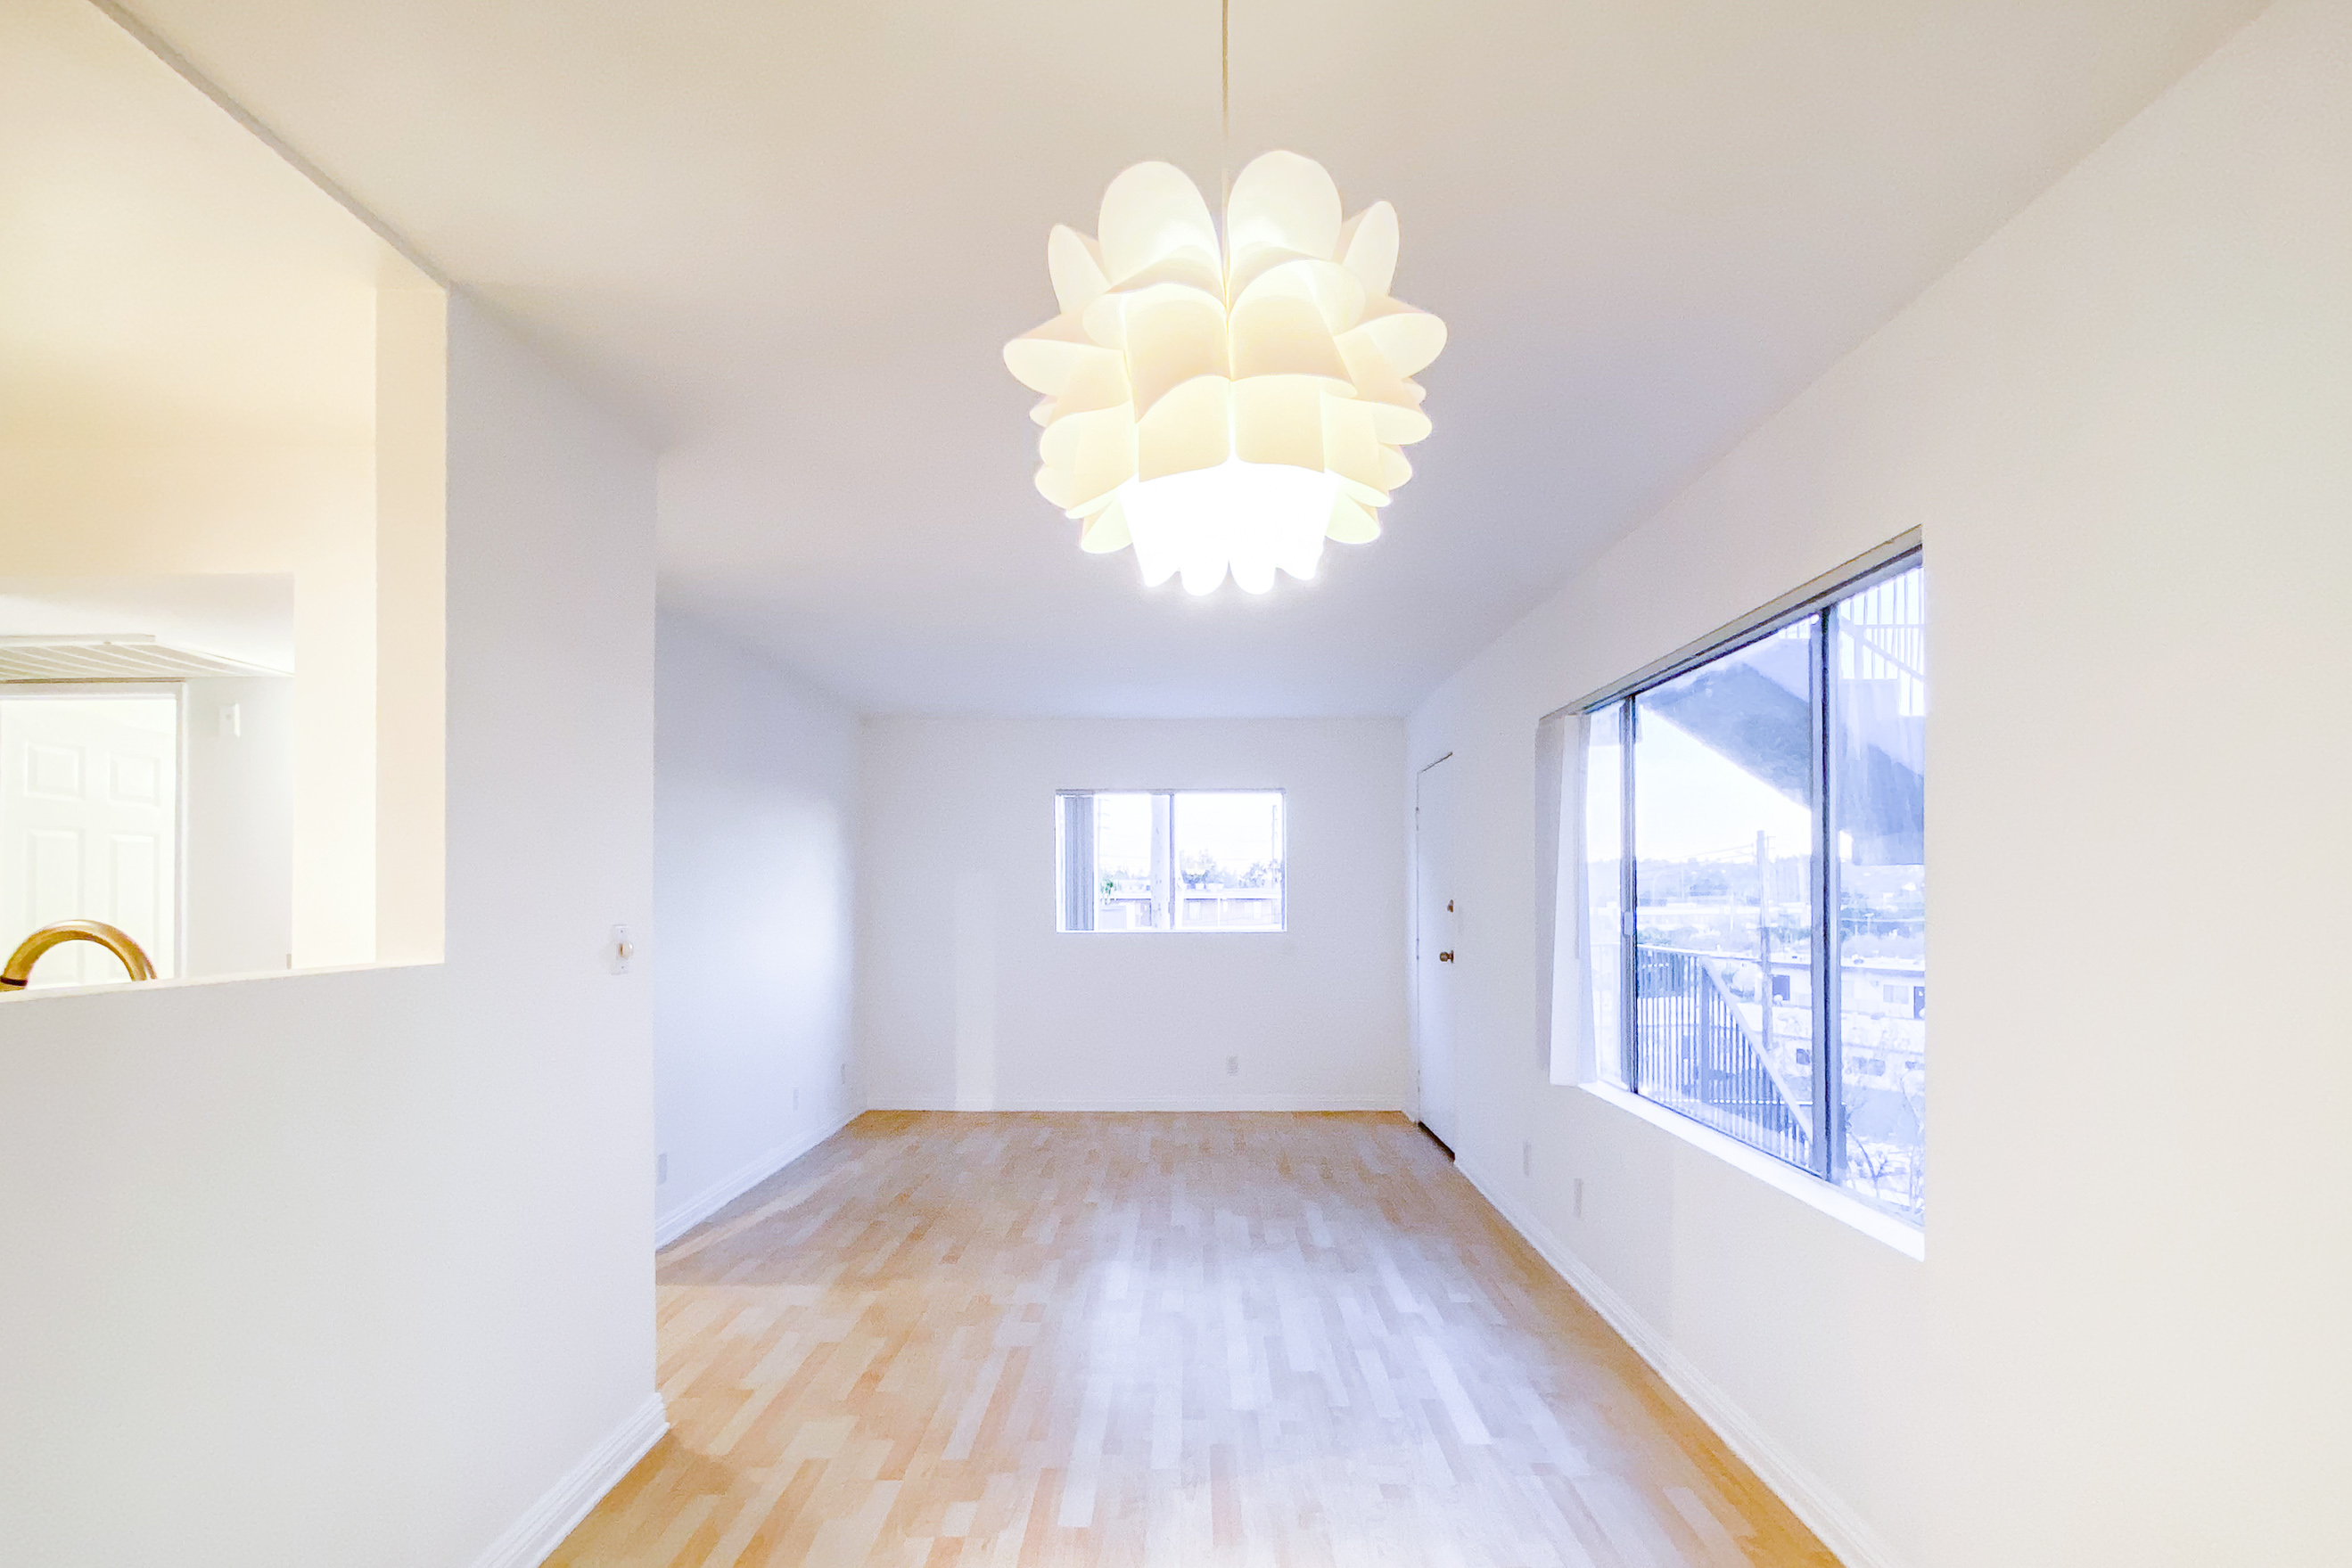 2 Bed, 2 Bath | Minutes to Highland Park, Glendale, and Atwater Village | Newly updated 1980's architecture in Glassell Park | Gated Parking